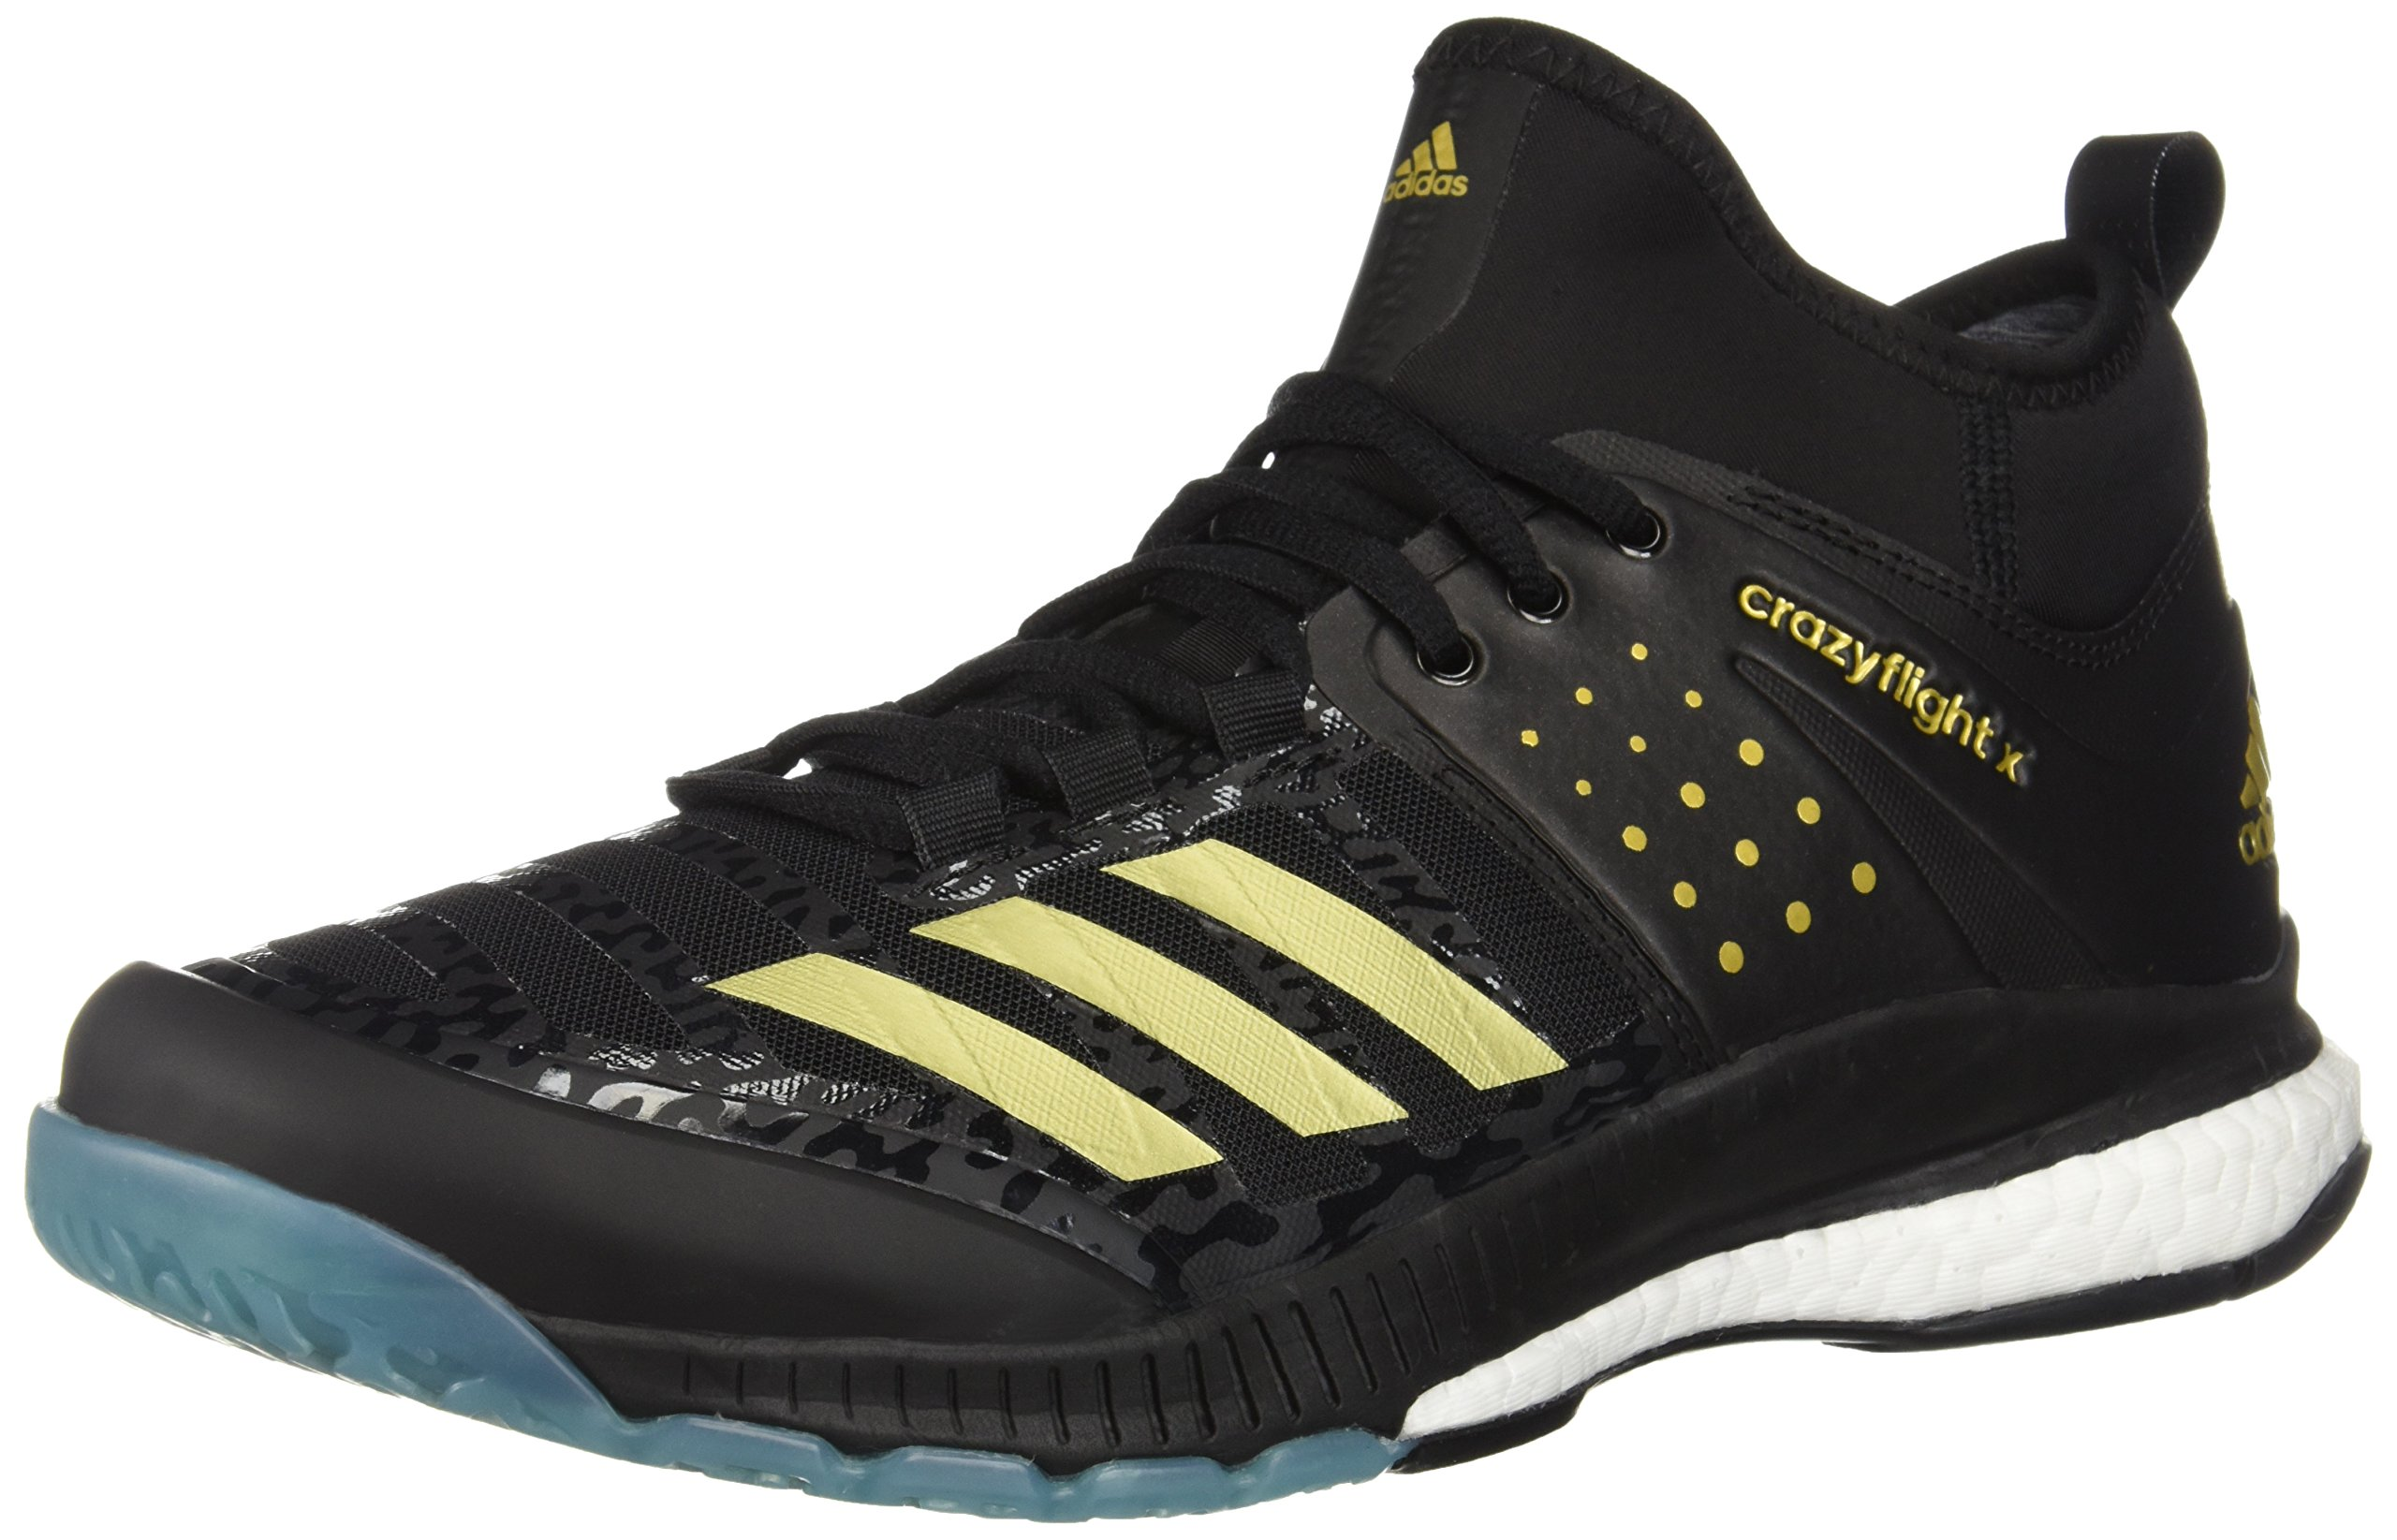 adidas Men's Crazyflight X Mid Volleyball Shoes, (Core Black, Gold Met, Icey Blue F17), (7 M US) by adidas